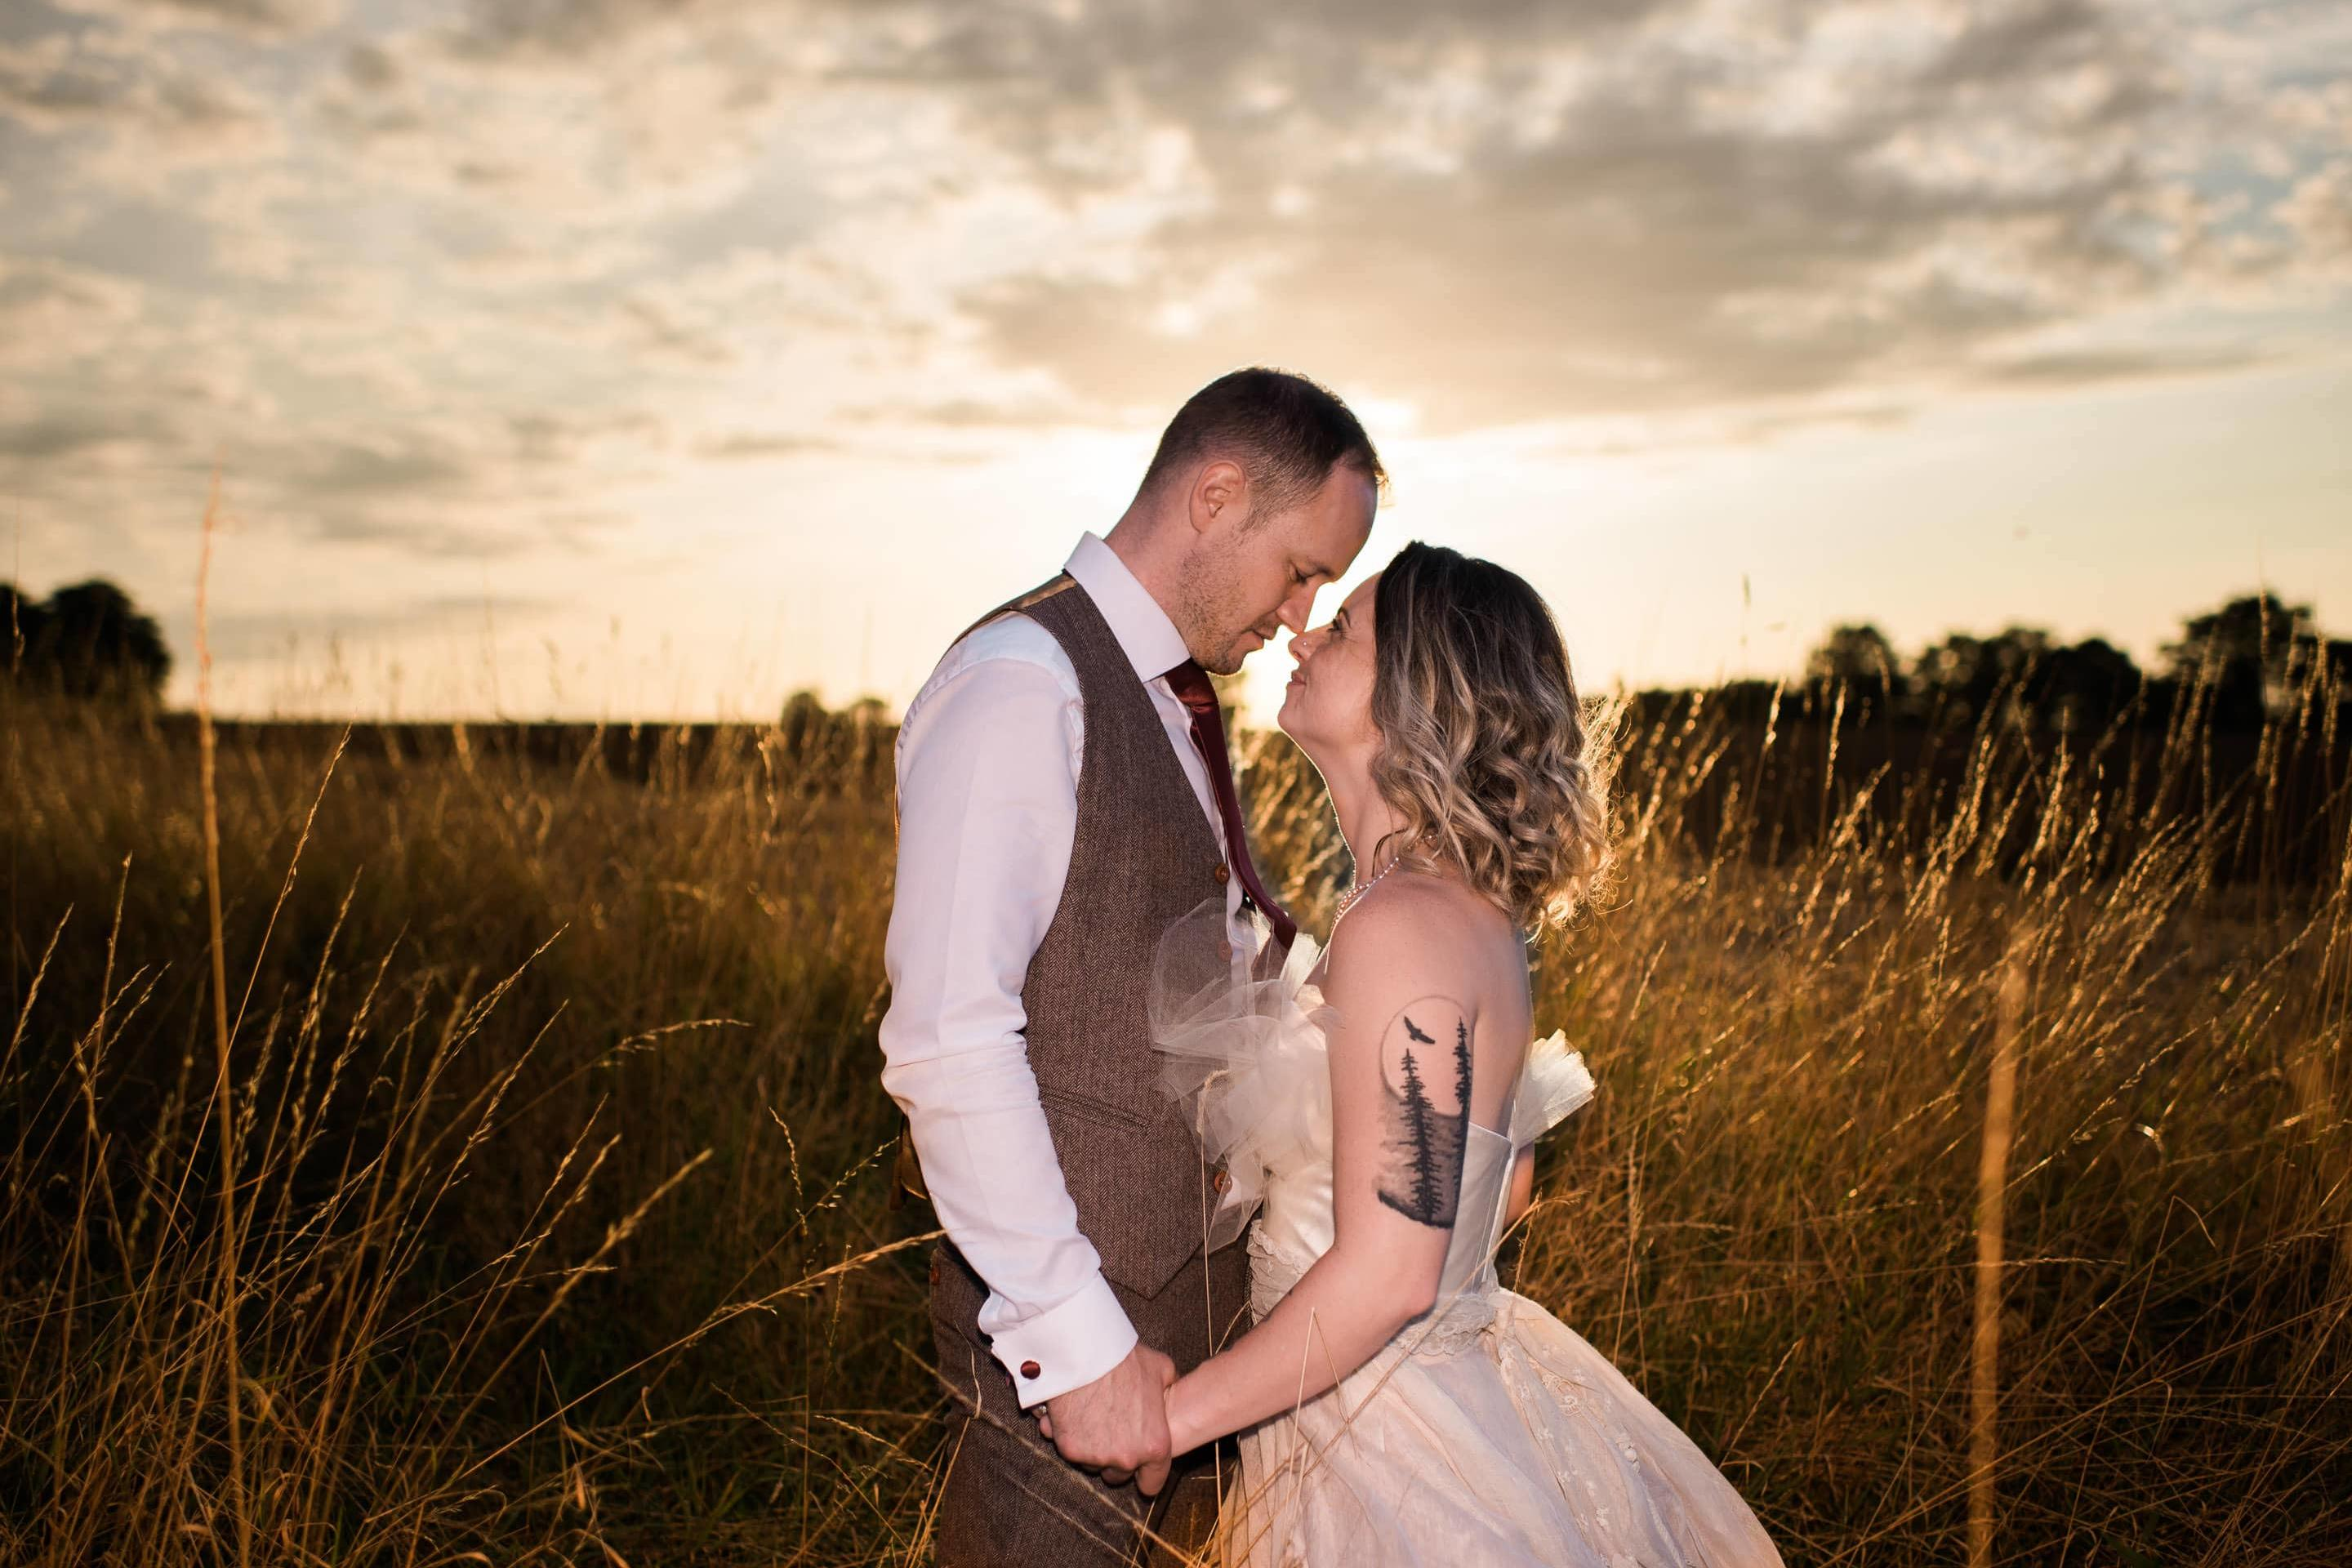 How to Get the Most Out of Your Wedding Photographer 1